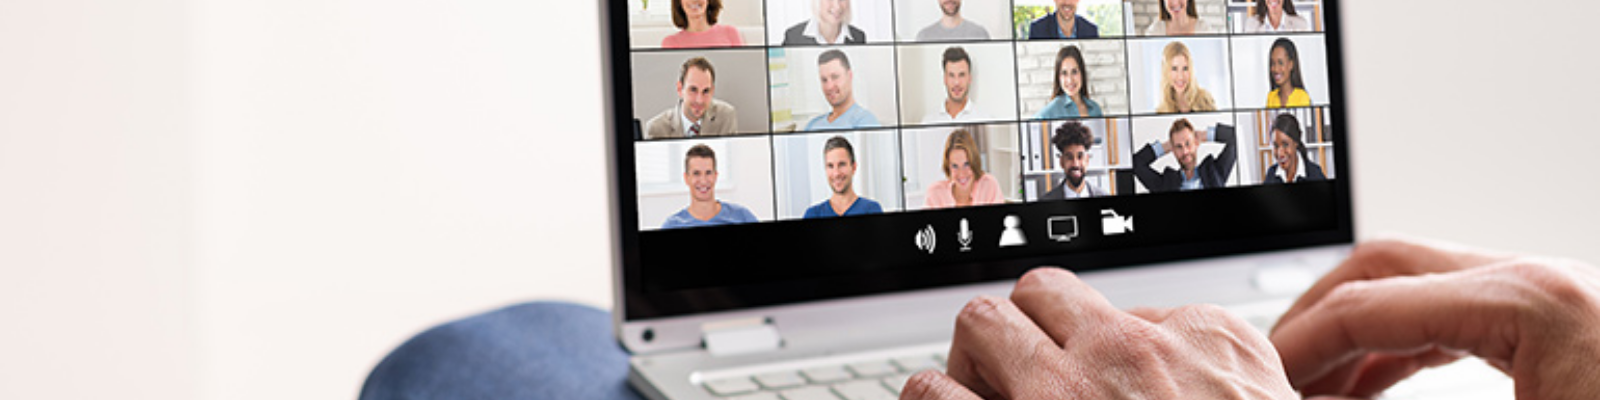 Motivating your team from home